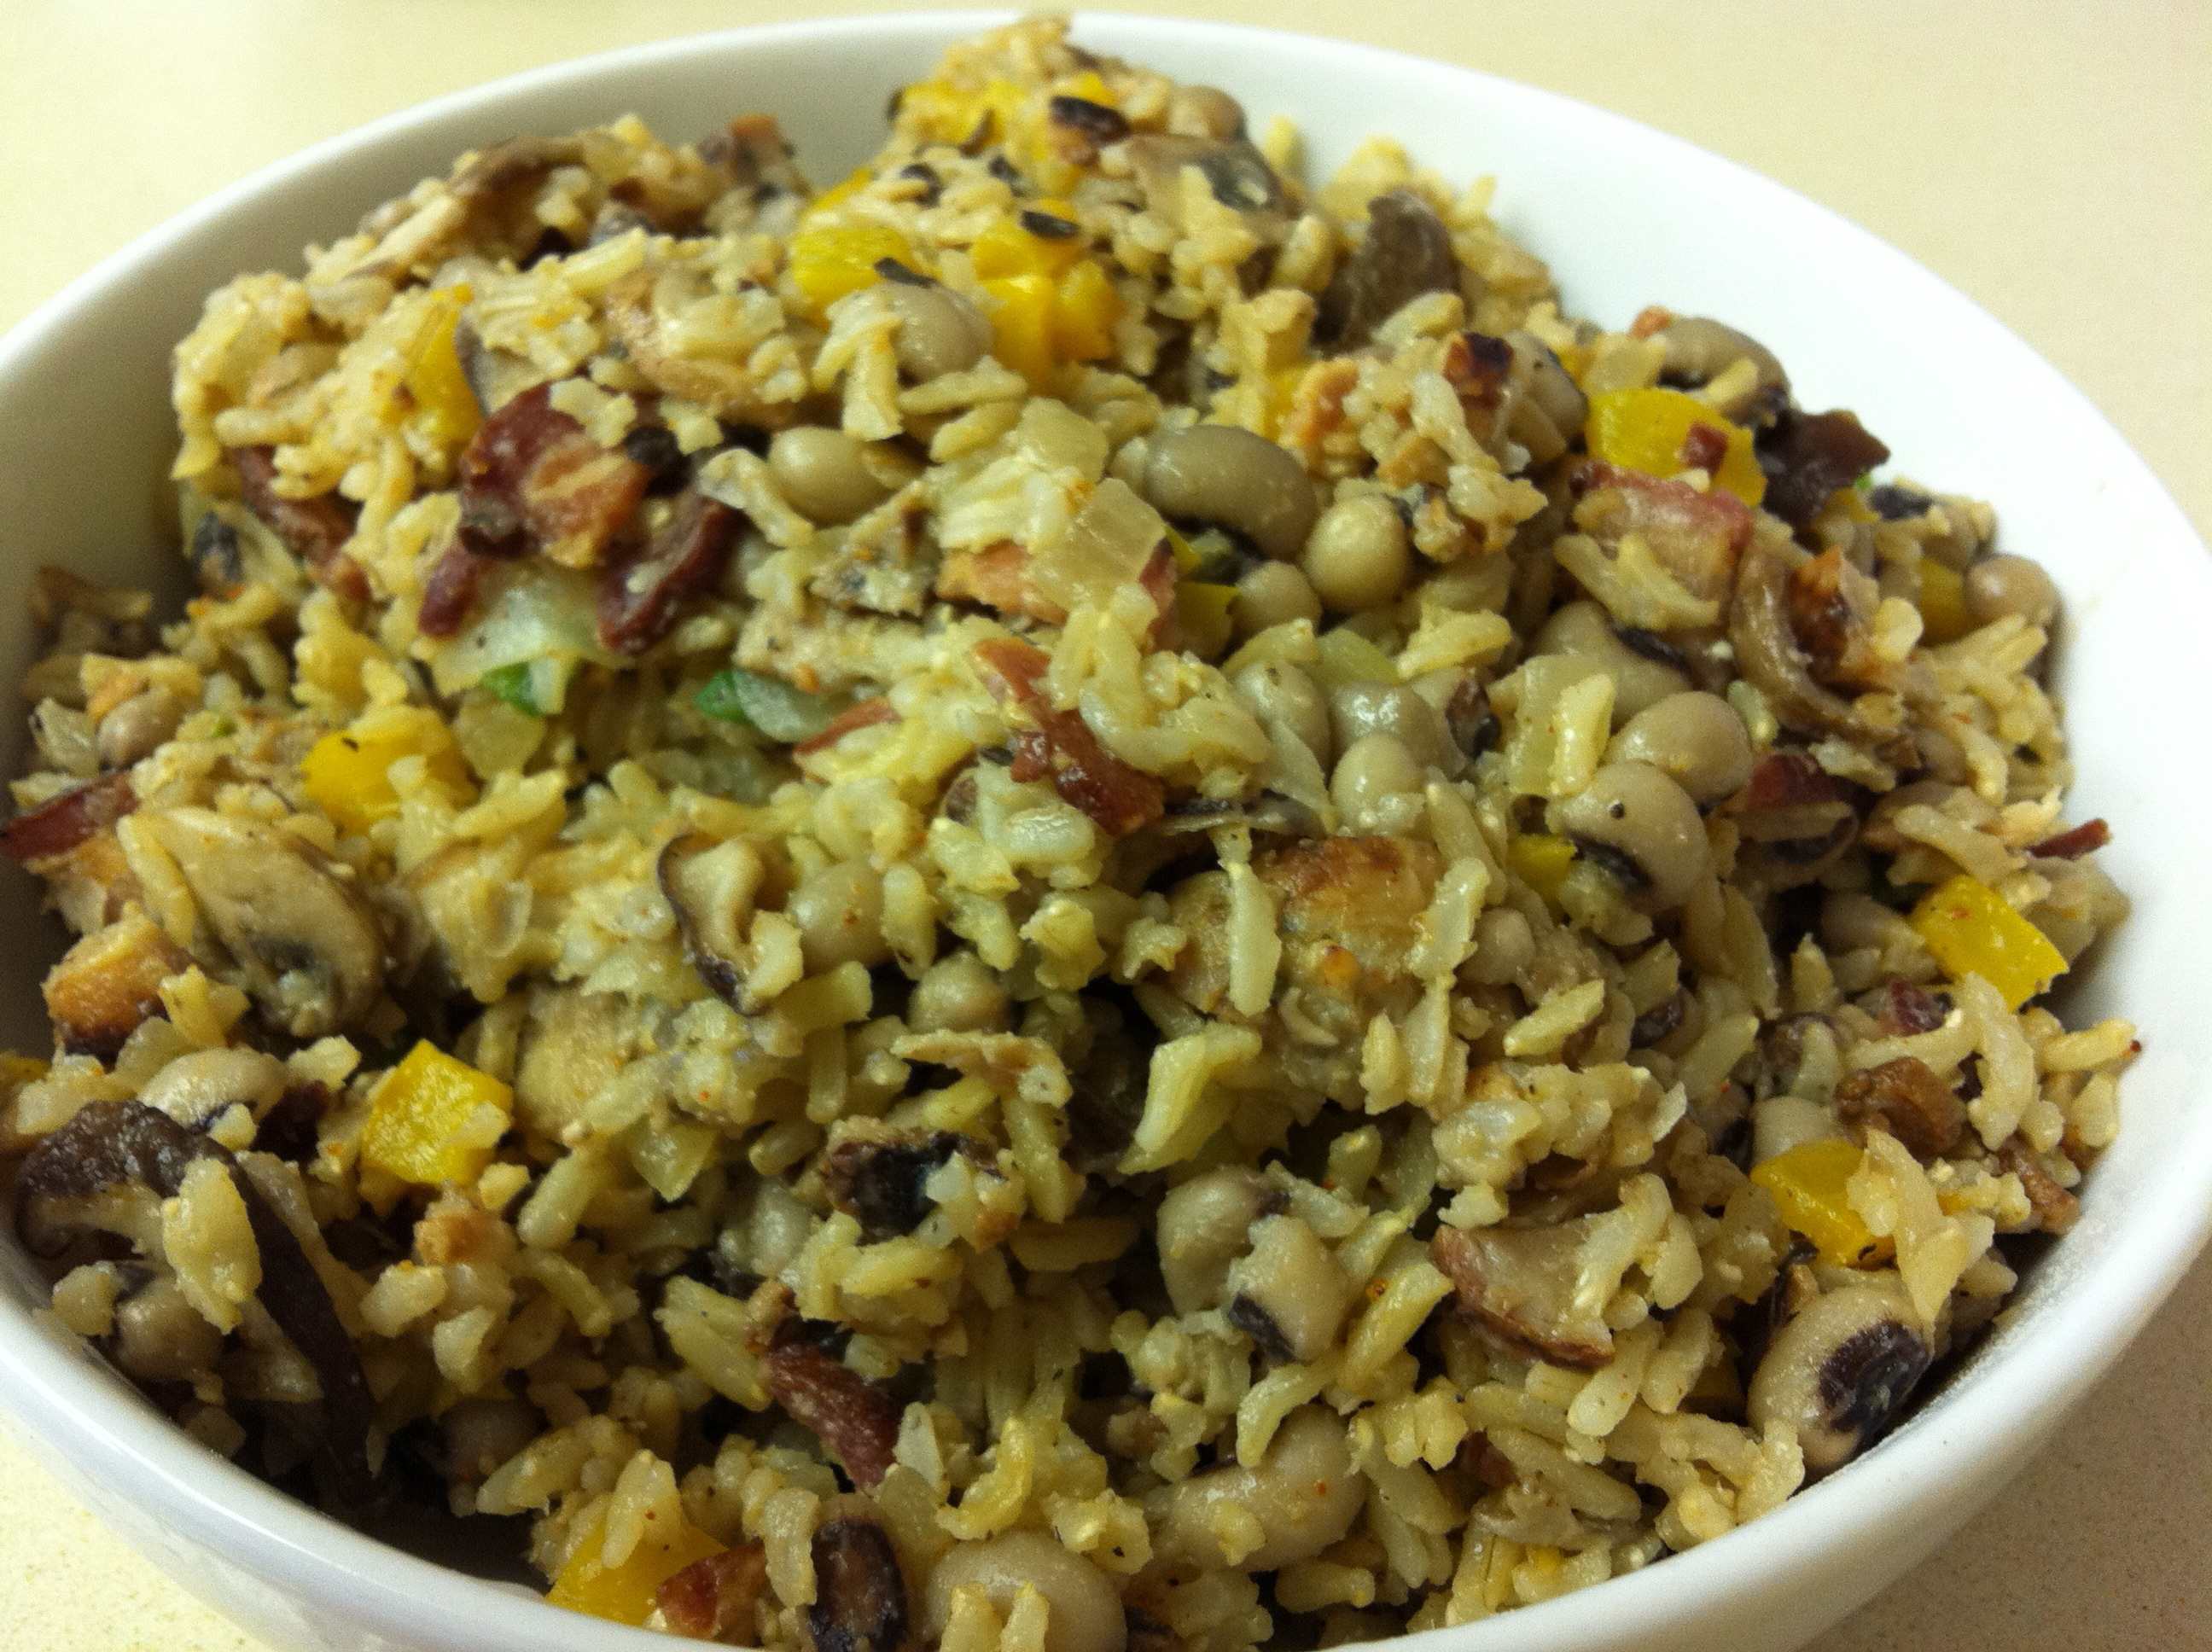 Hoppin' John (to serve at New Year's for Good Luck)